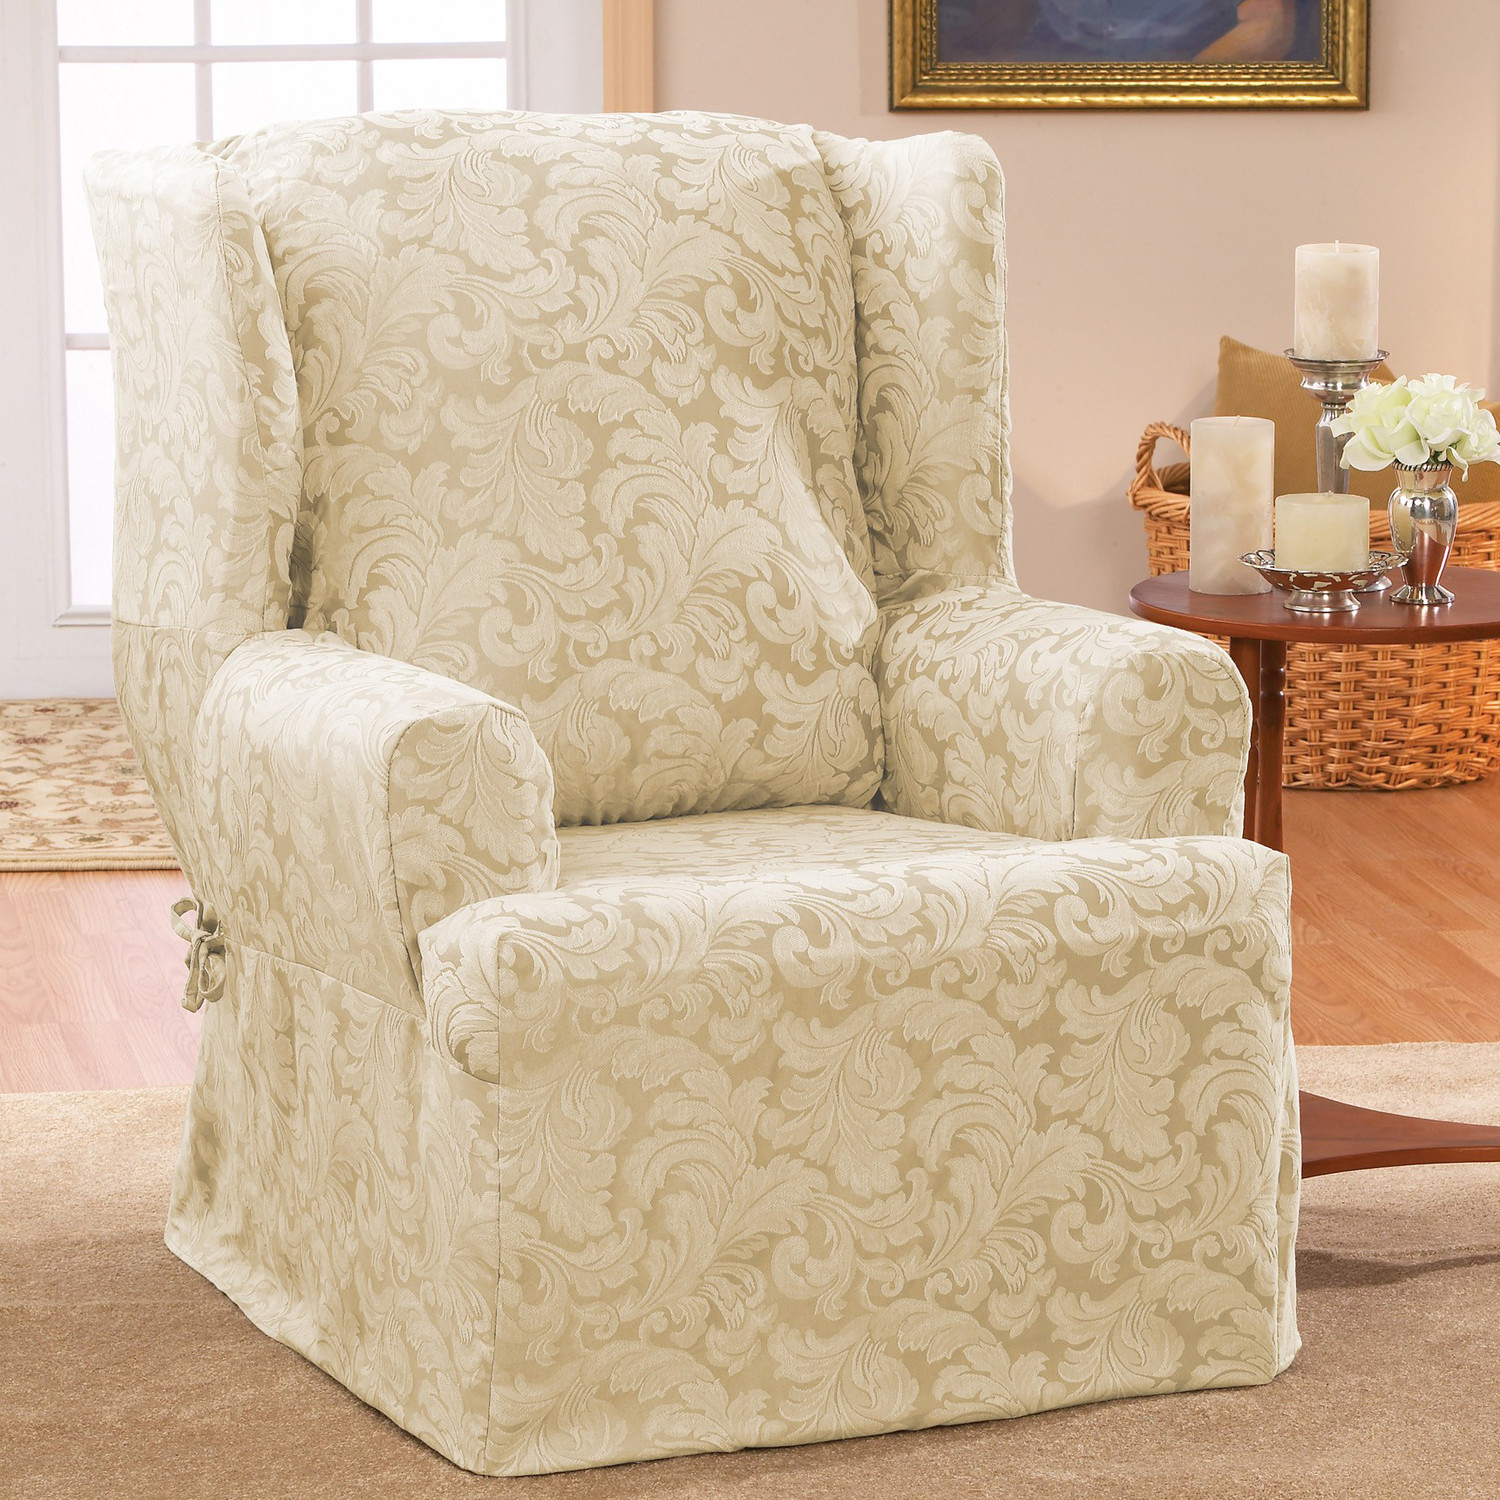 Living Room Chair Covers Ideas Elegant Black I For Decorating